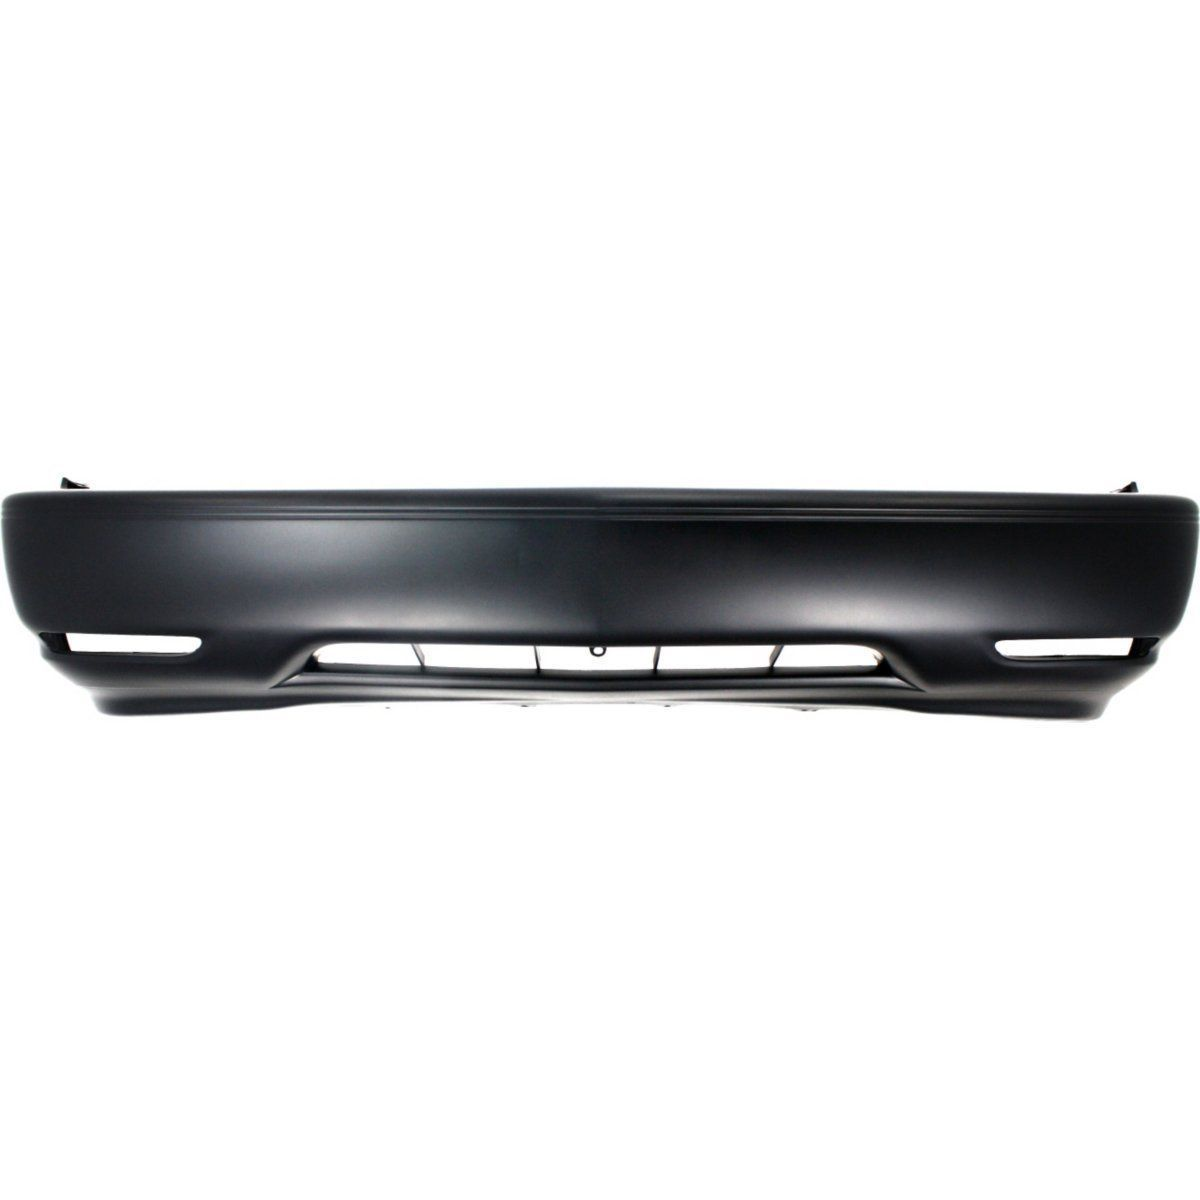 1999-2003 LEXUS RX 300 Front Bumper Cover Painted to Match